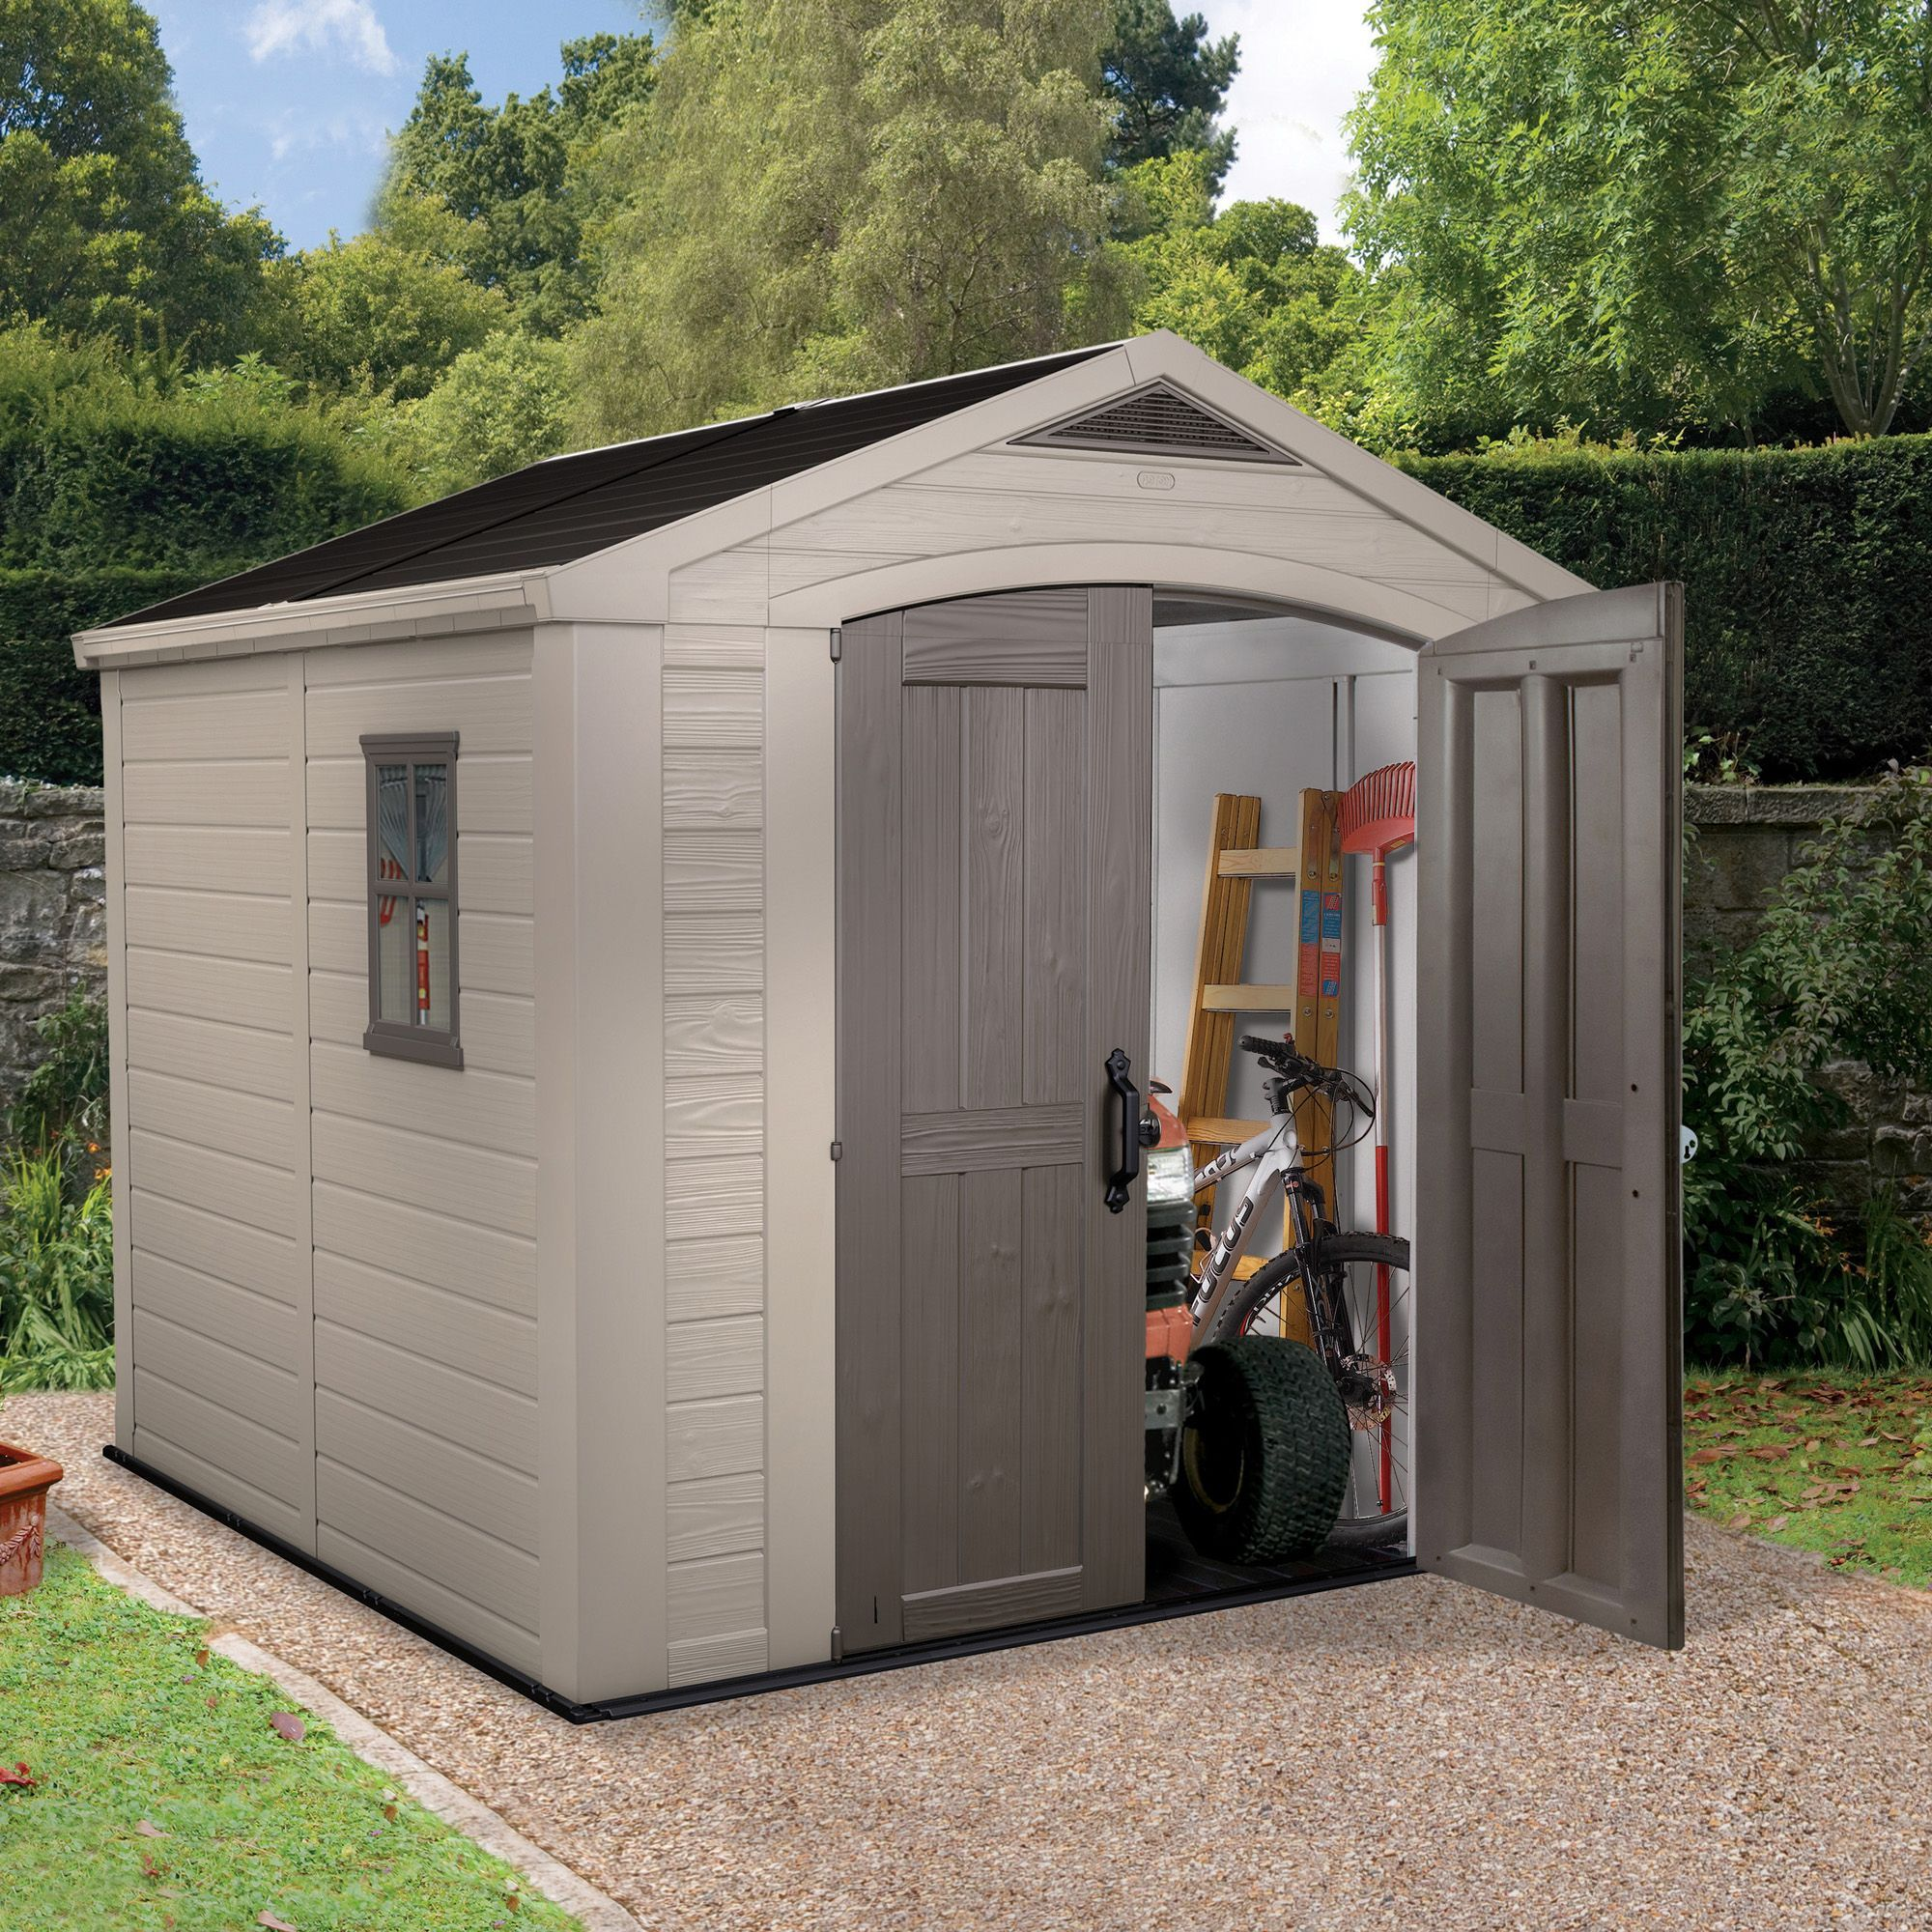 Garden Sheds B Q 8x8 factor apex plastic shed | garden sheds, garden ideas and workshop